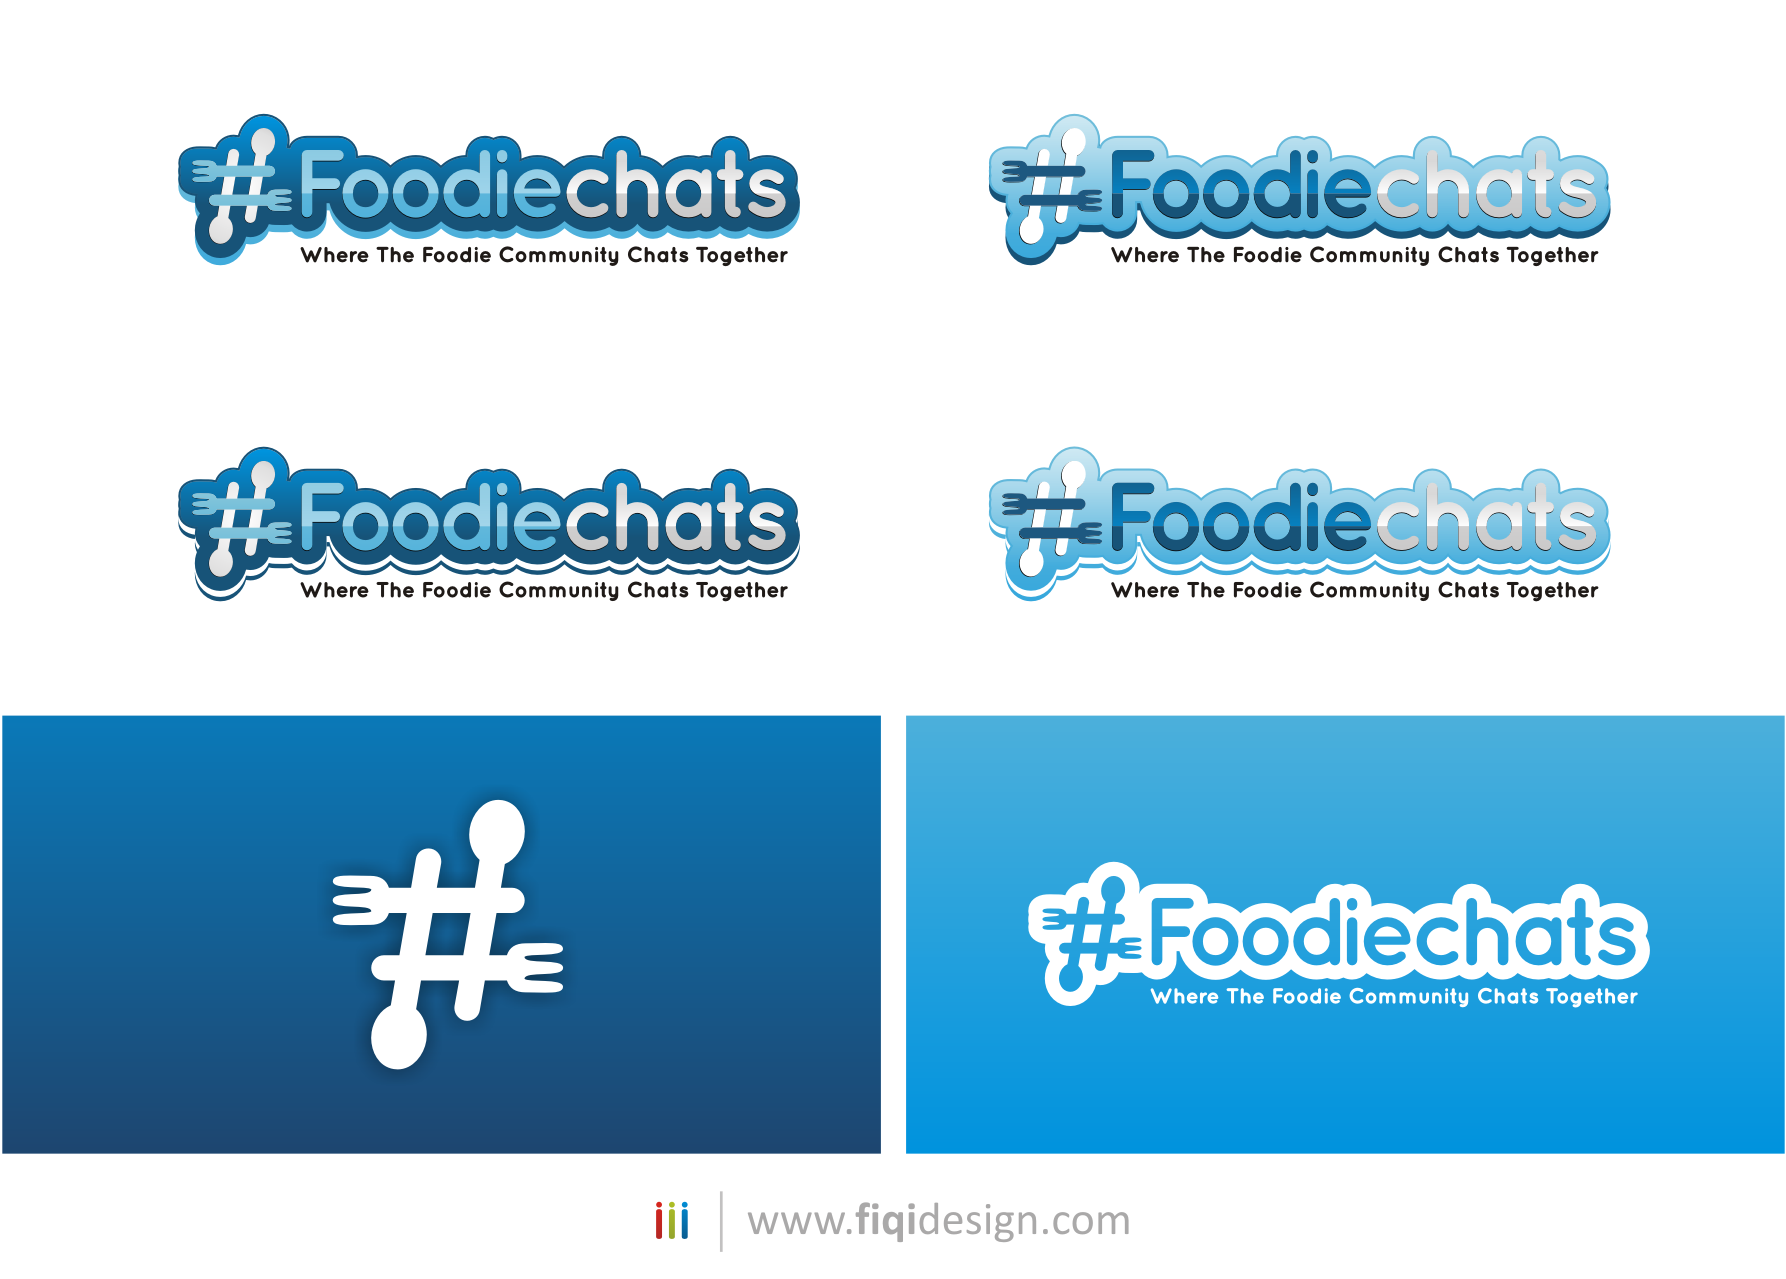 New logo wanted for Foodiechats